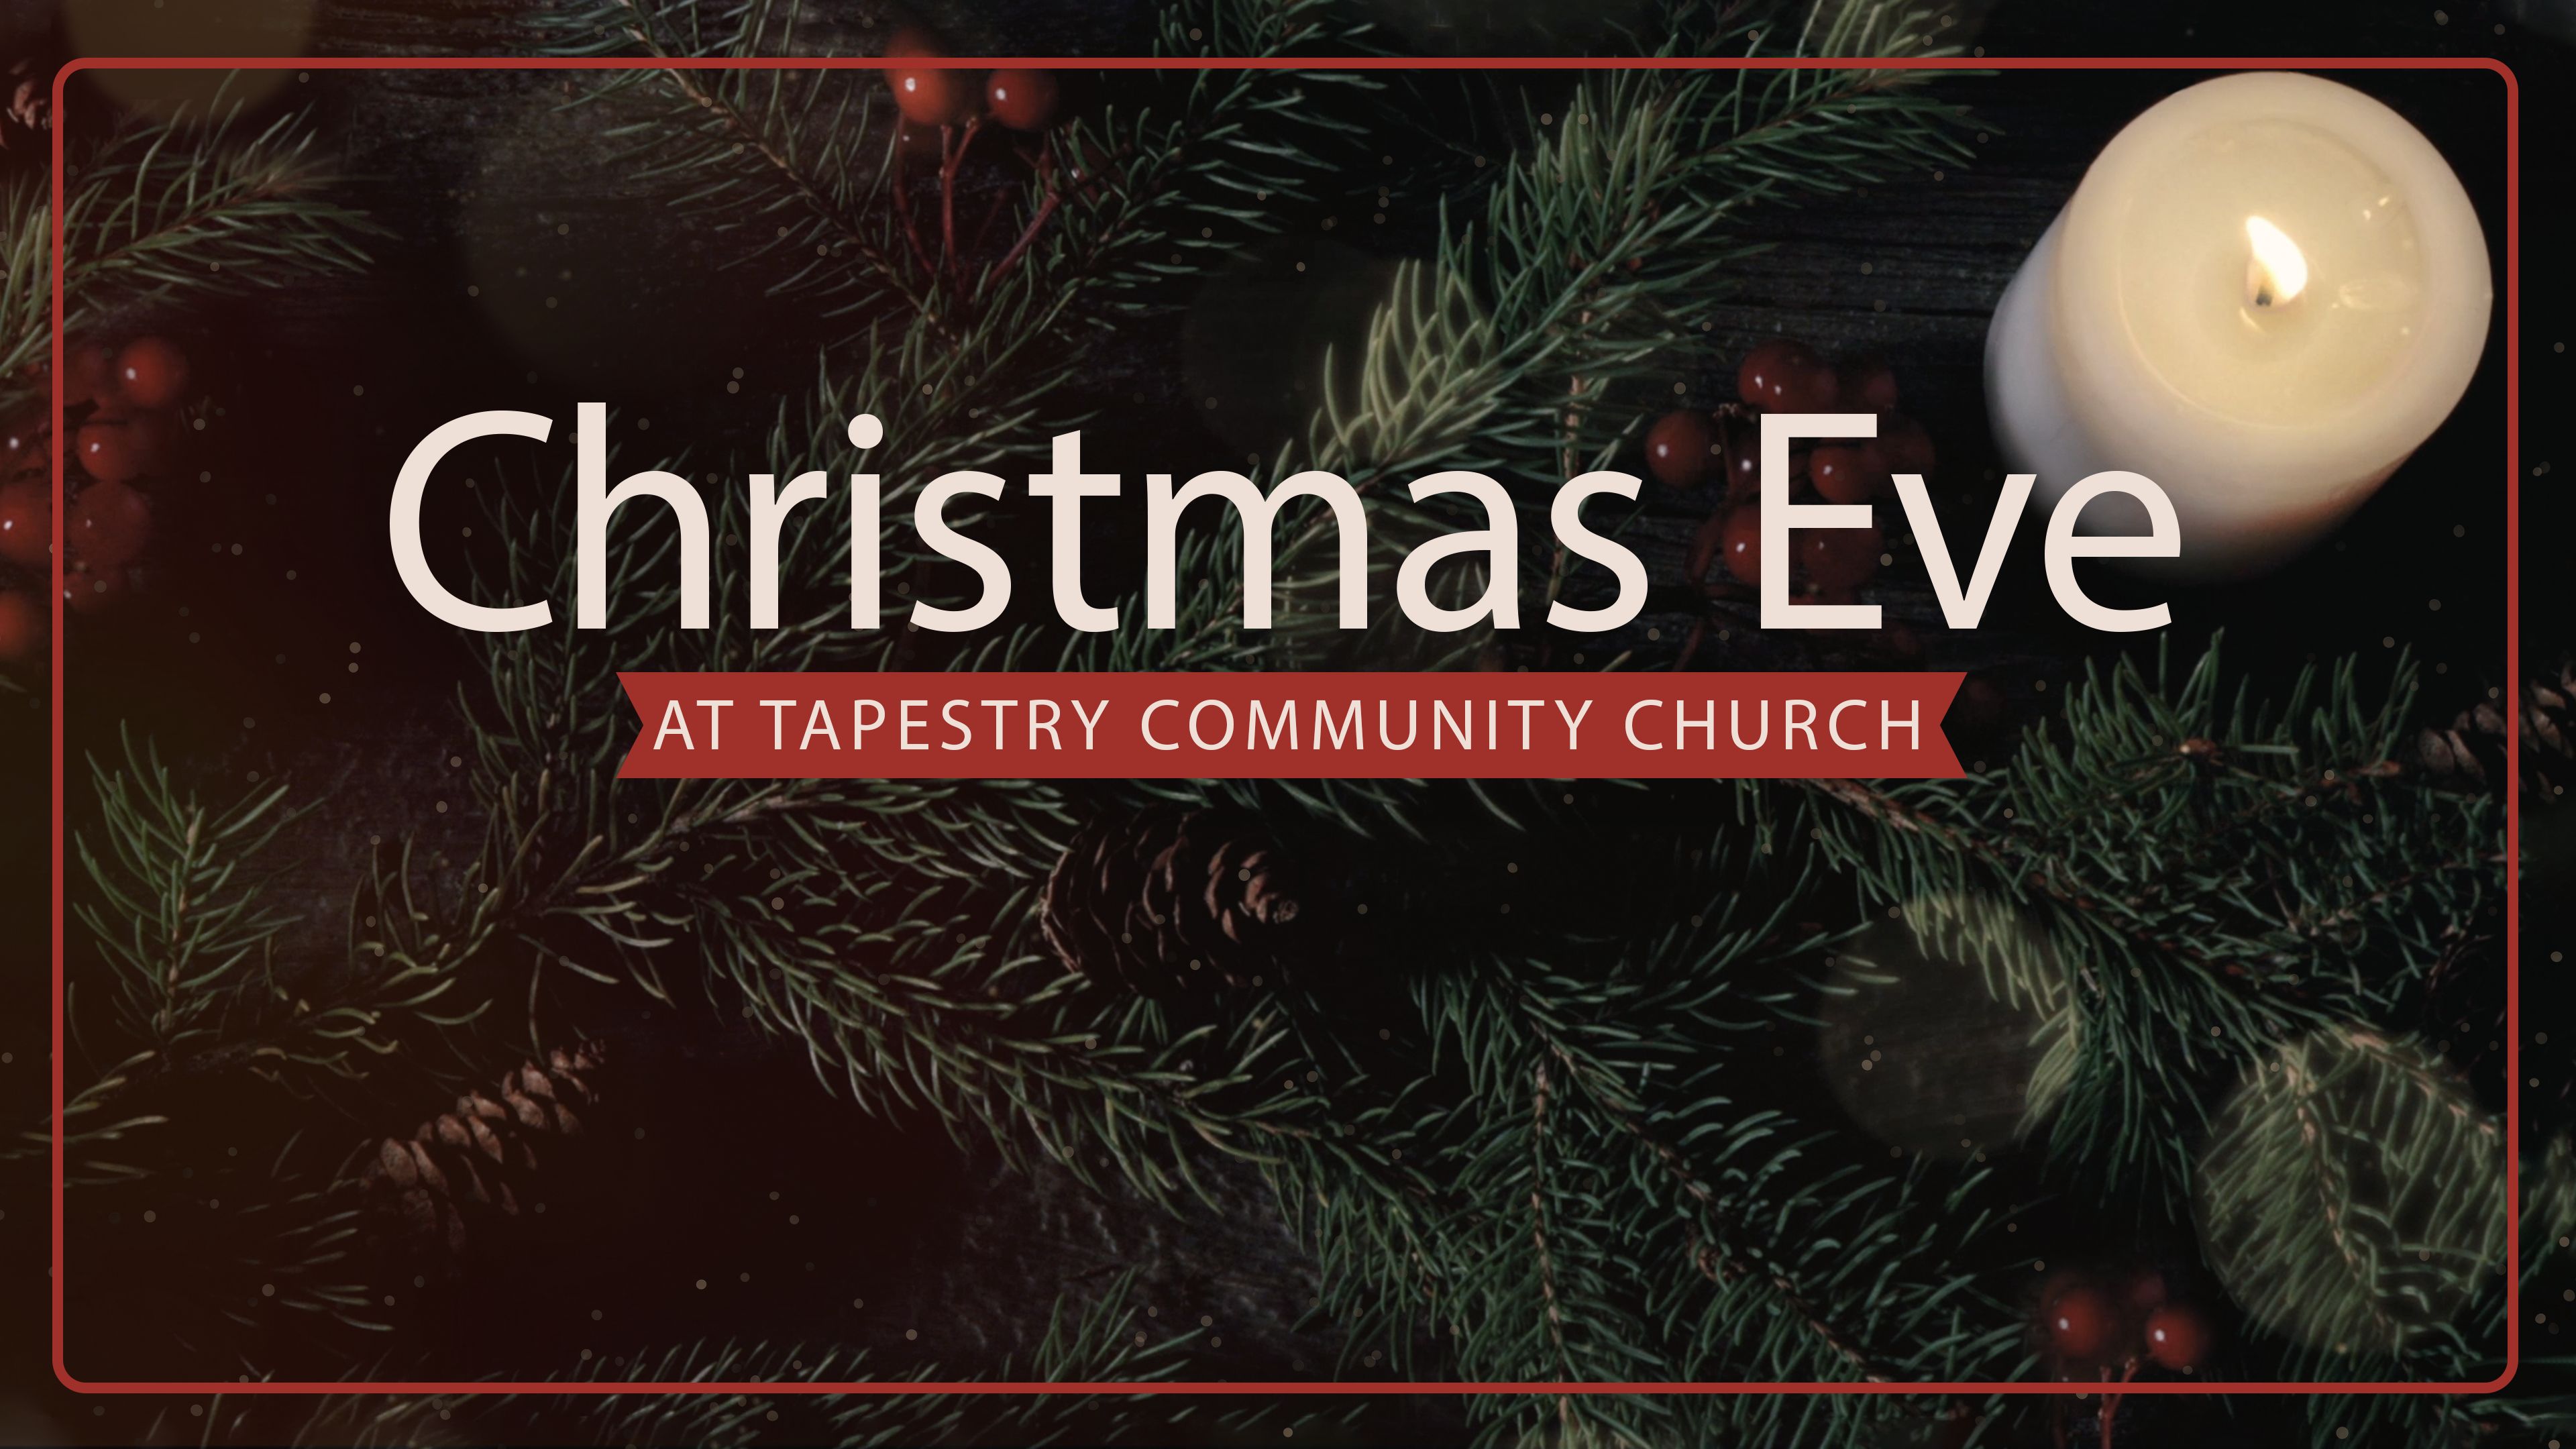 Christmas Eve at Tapestry